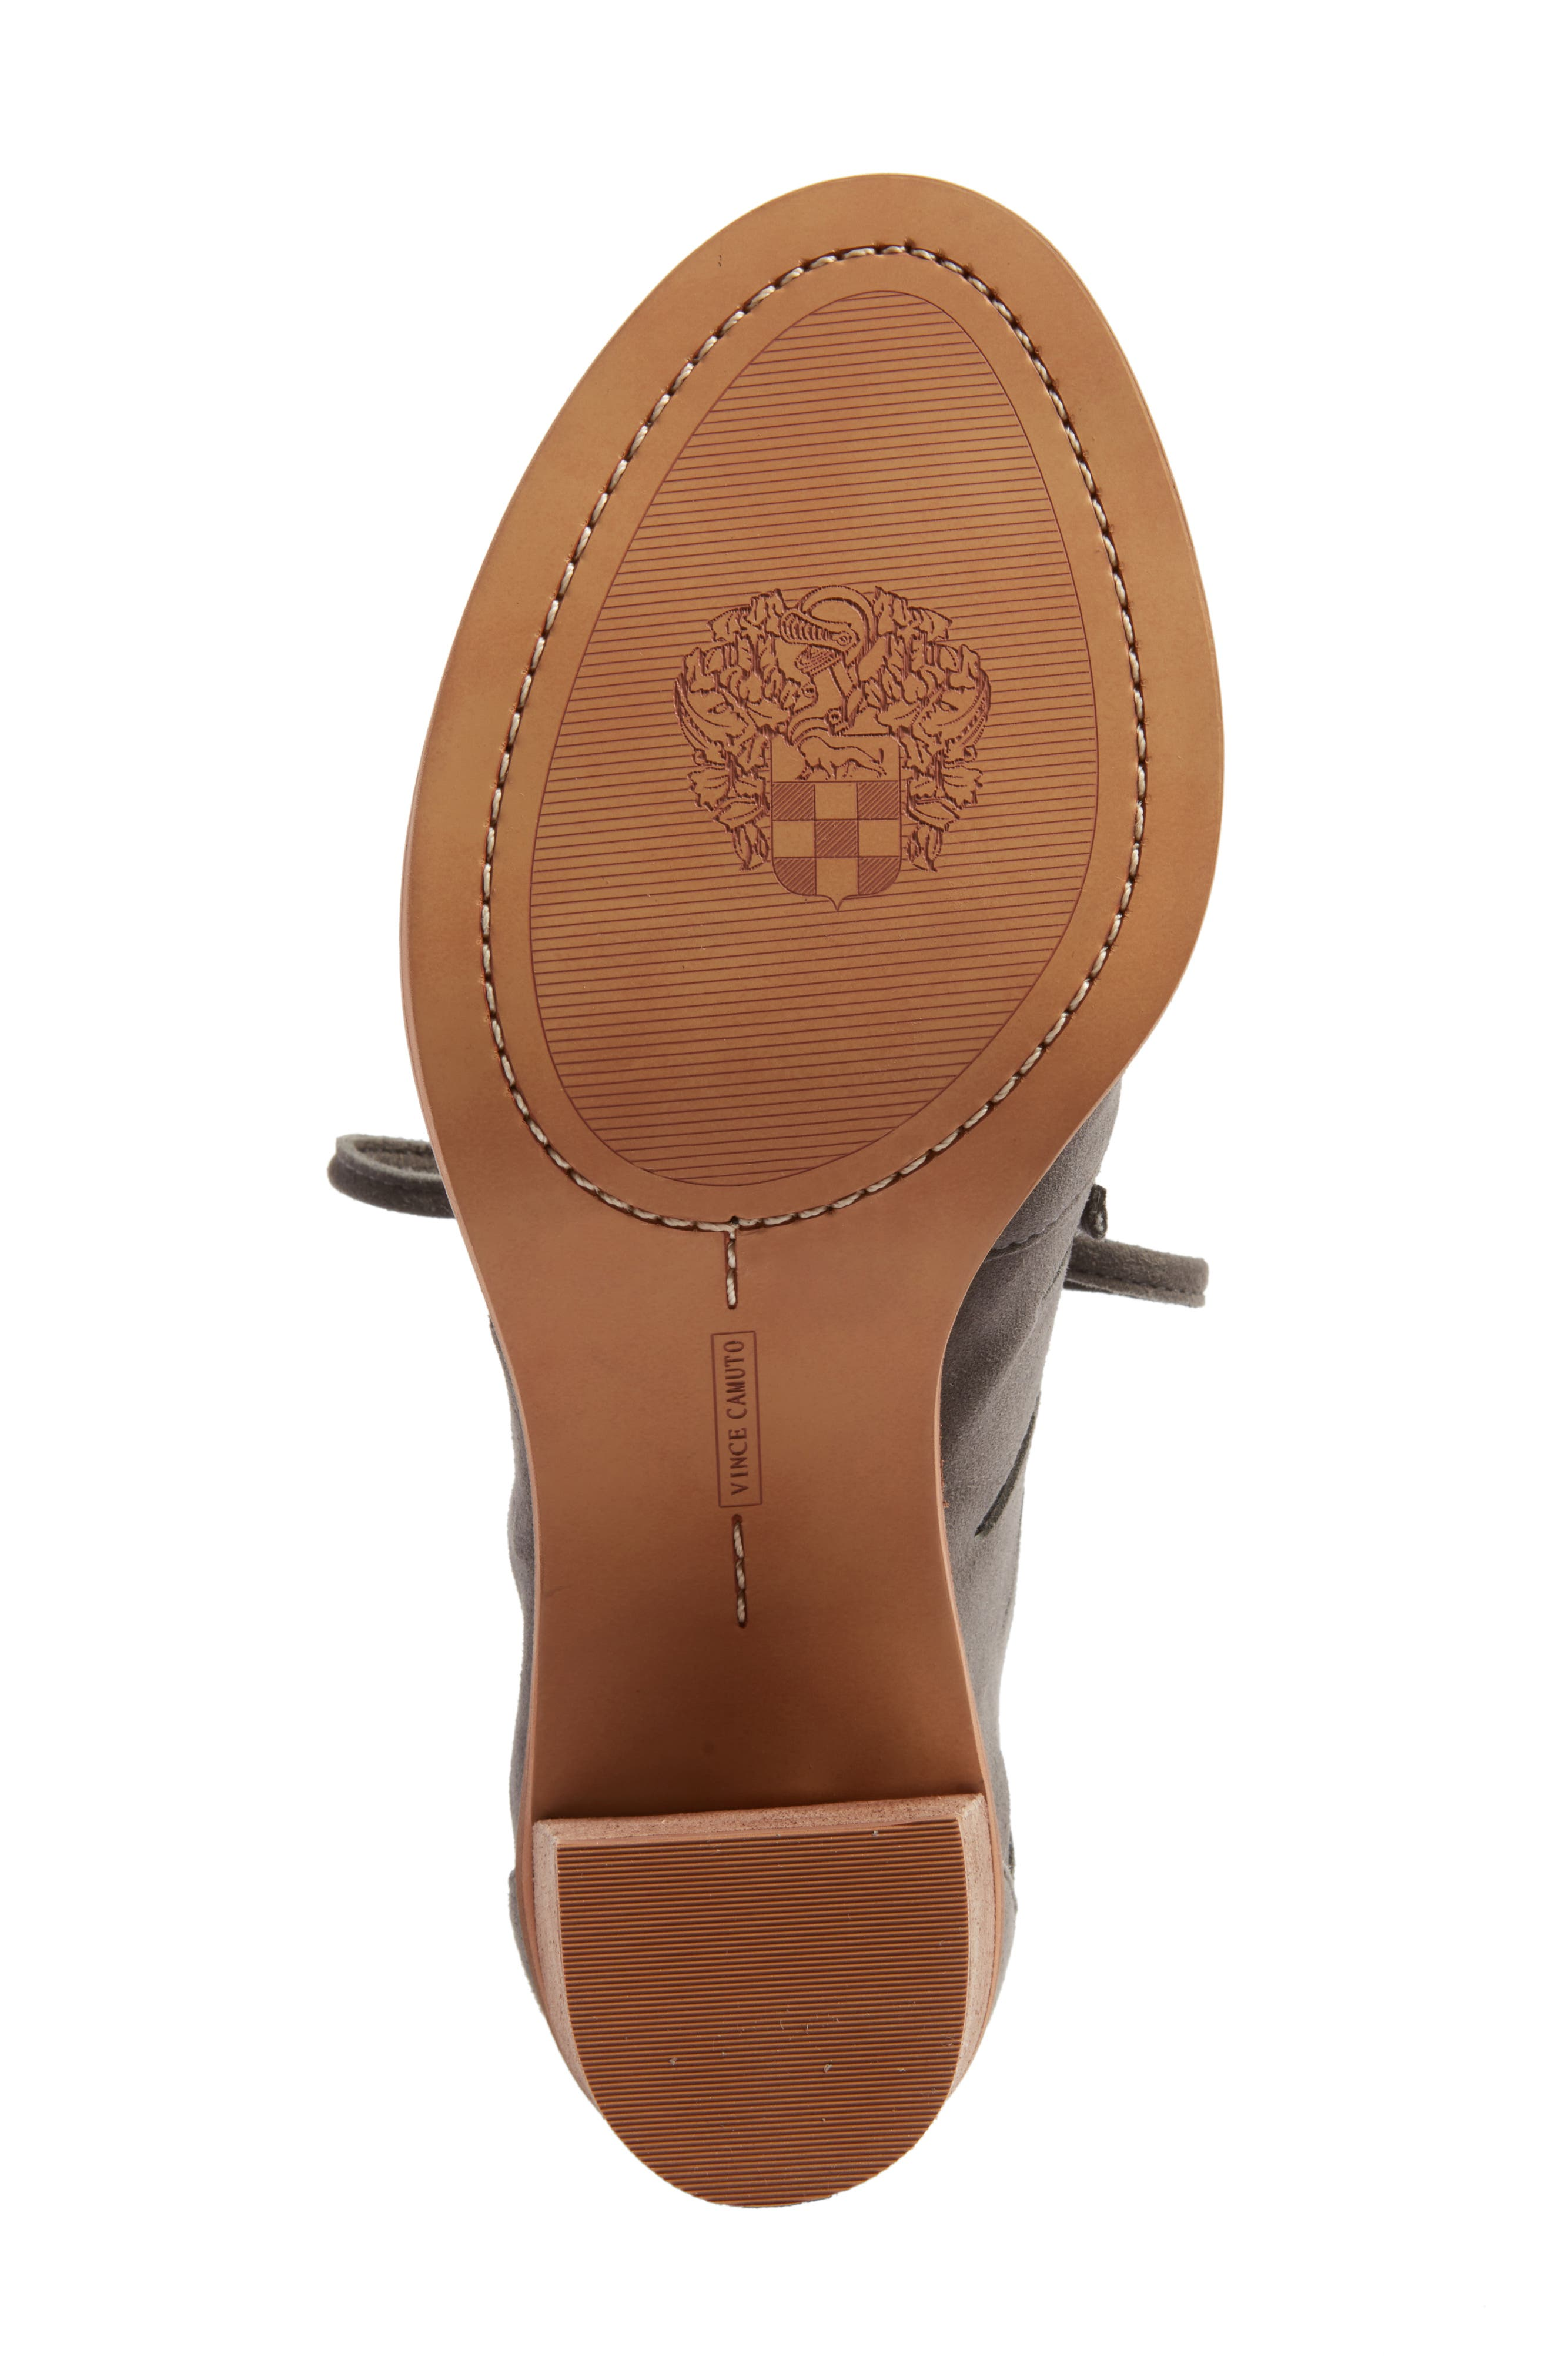 Tressa Perforated Lace-Up Sandal,                             Alternate thumbnail 6, color,                             Greystone Suede